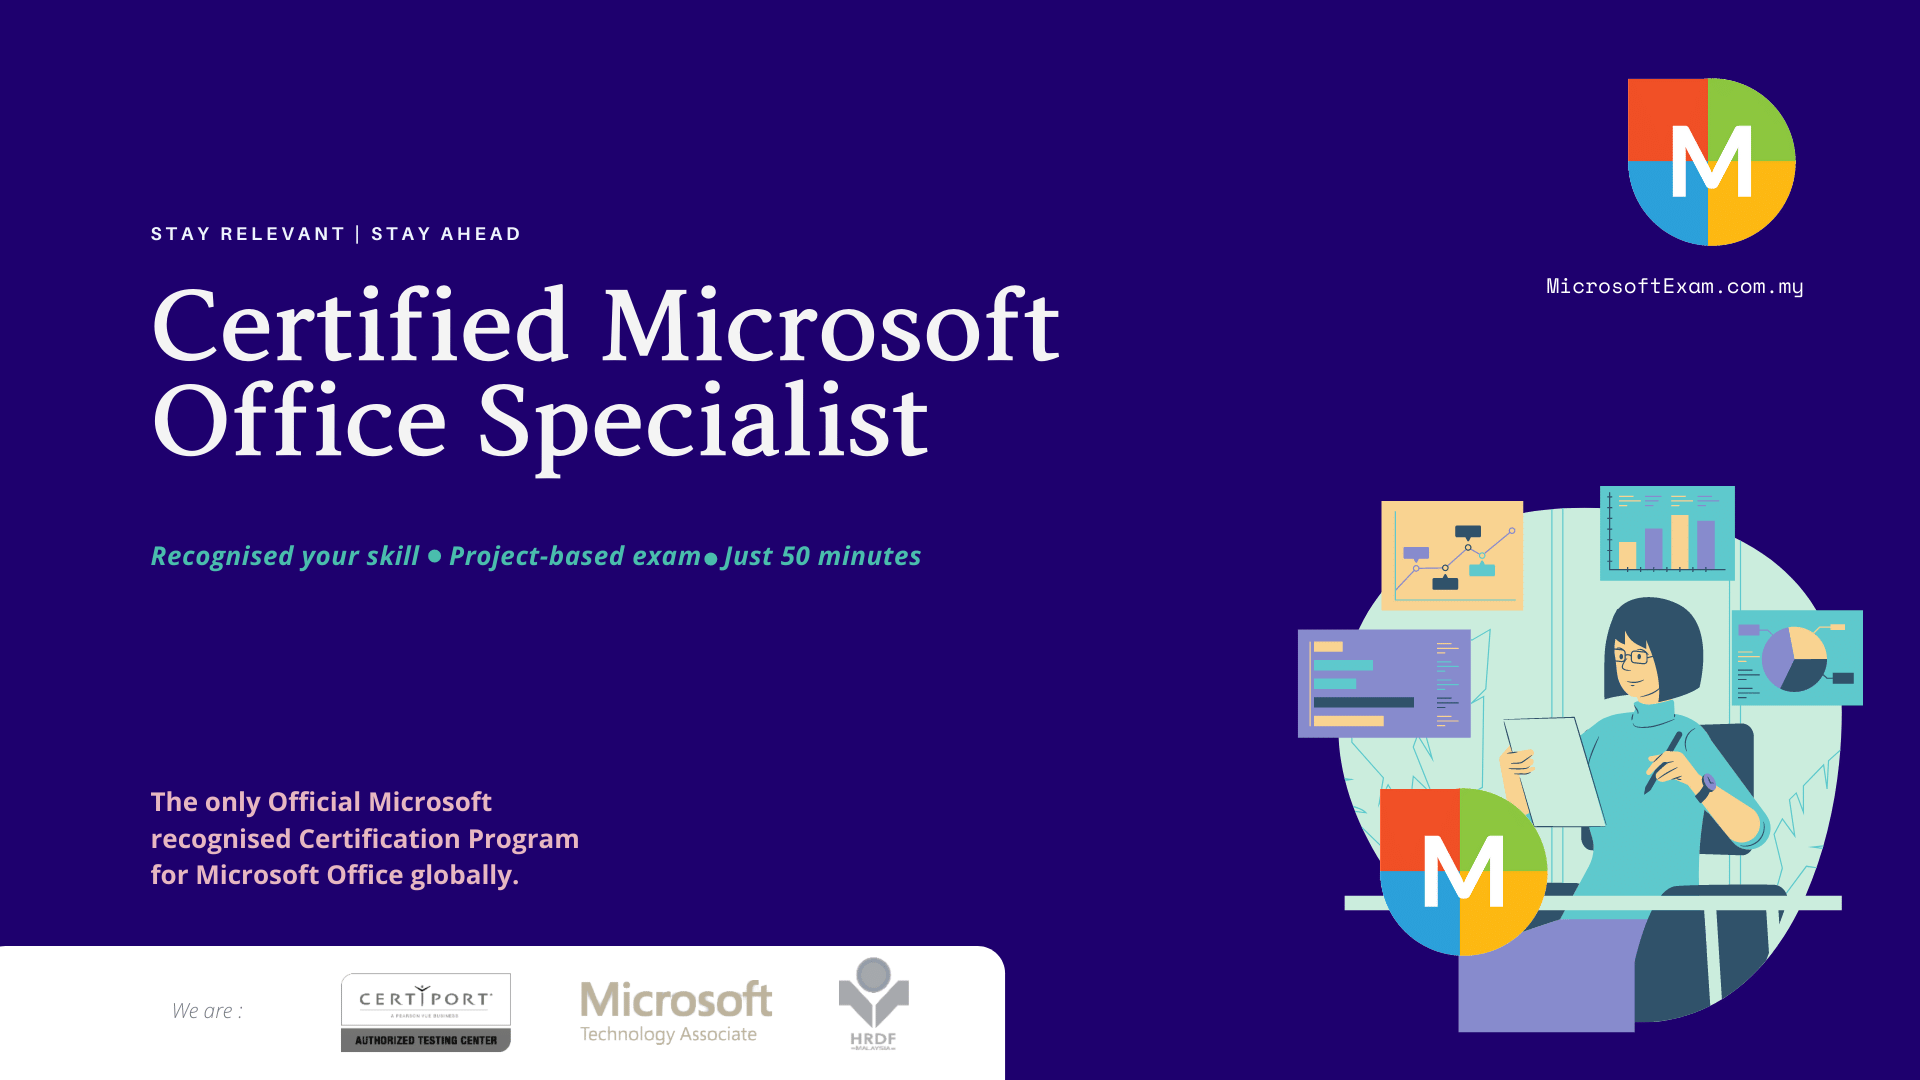 to review Certified Microsoft Office Specialist